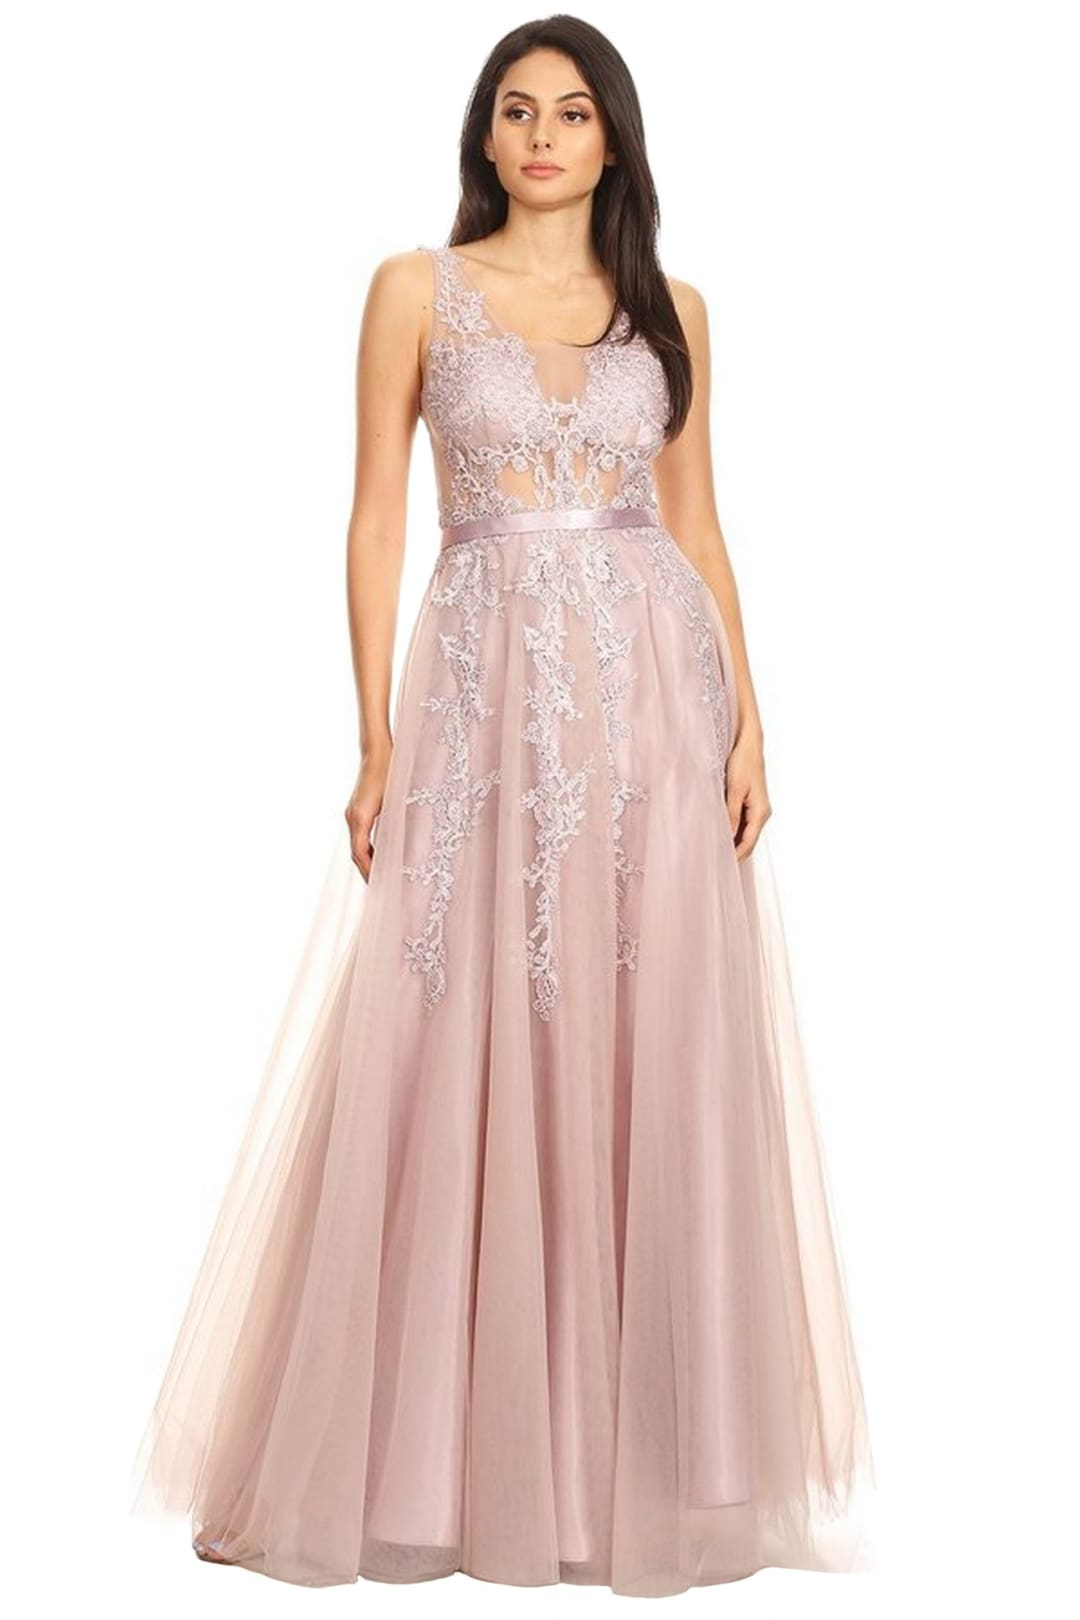 Prom Dance Evening Gown